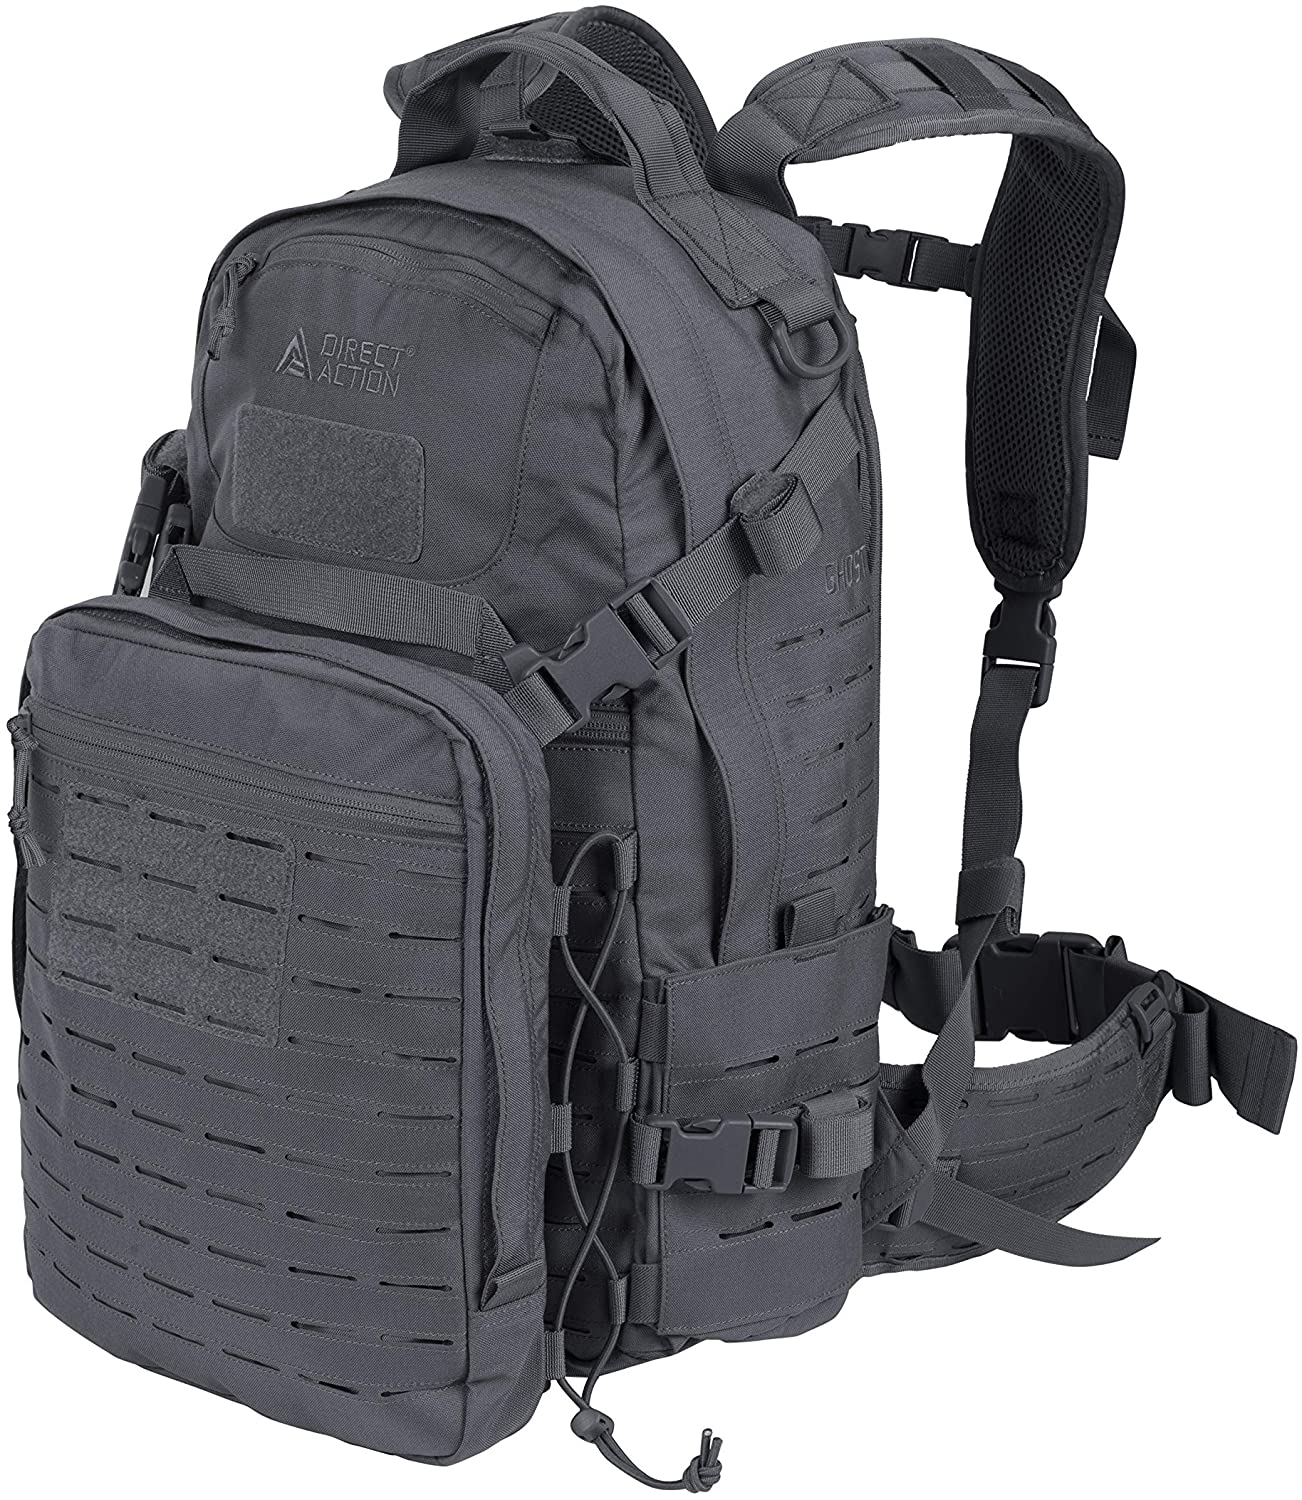 Direct Action Ghost Tactical Backpack 31 Liter Capacity